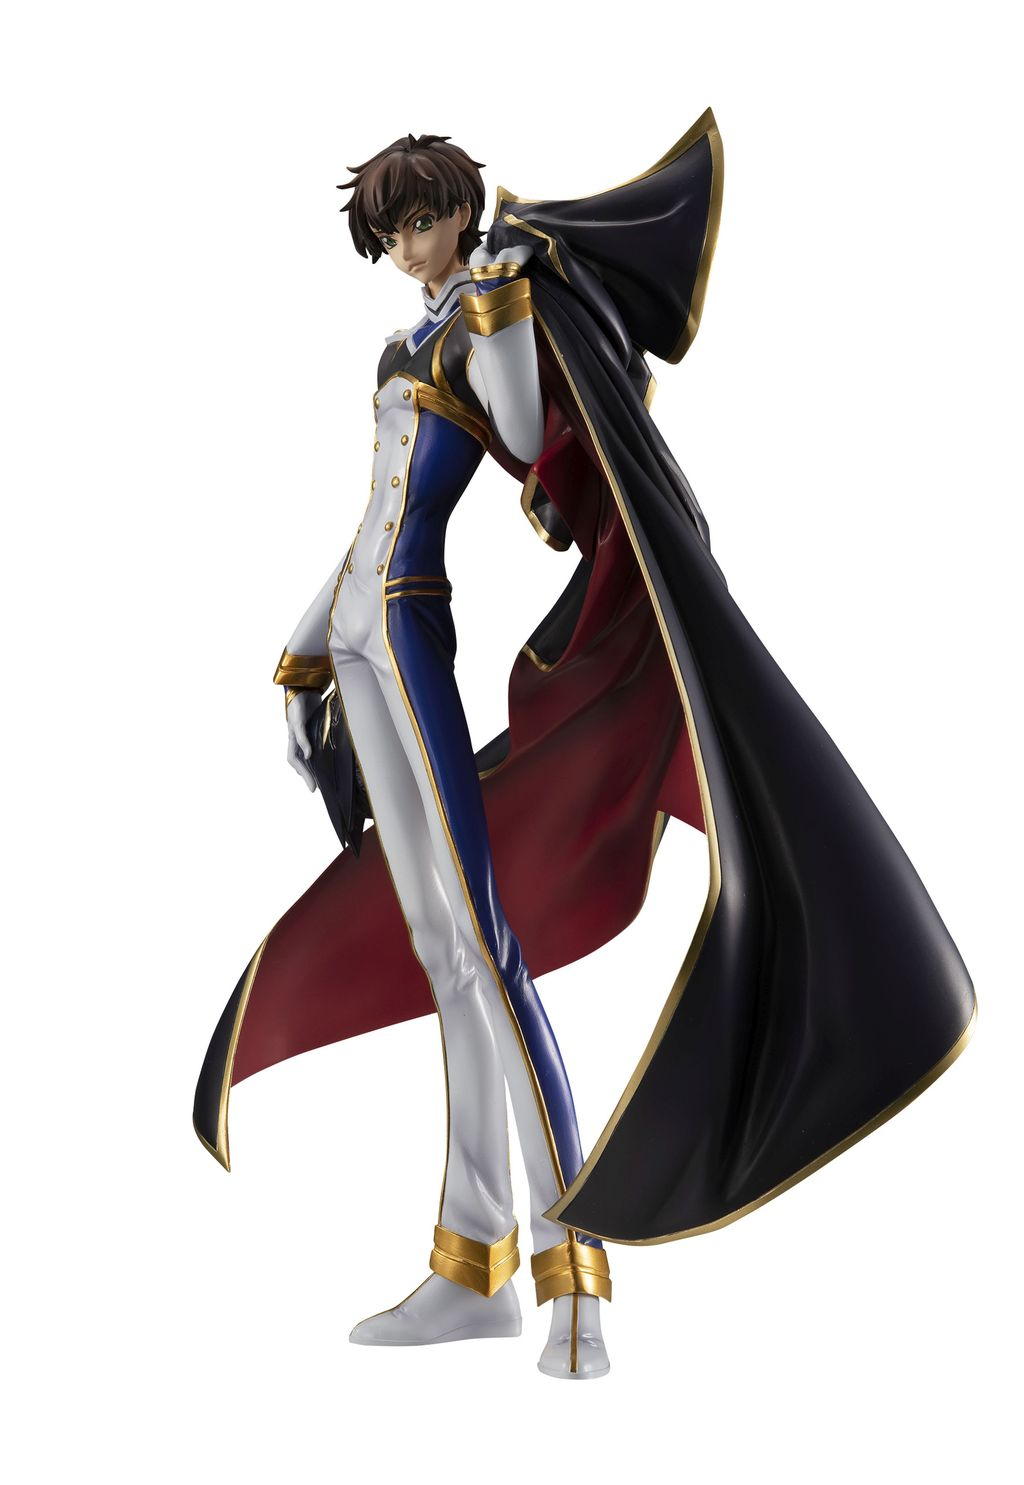 G.E.M. Series: Code Geass: Lelouch of the Re;surrection Suzaku Kururugi Pilot Ver. 1